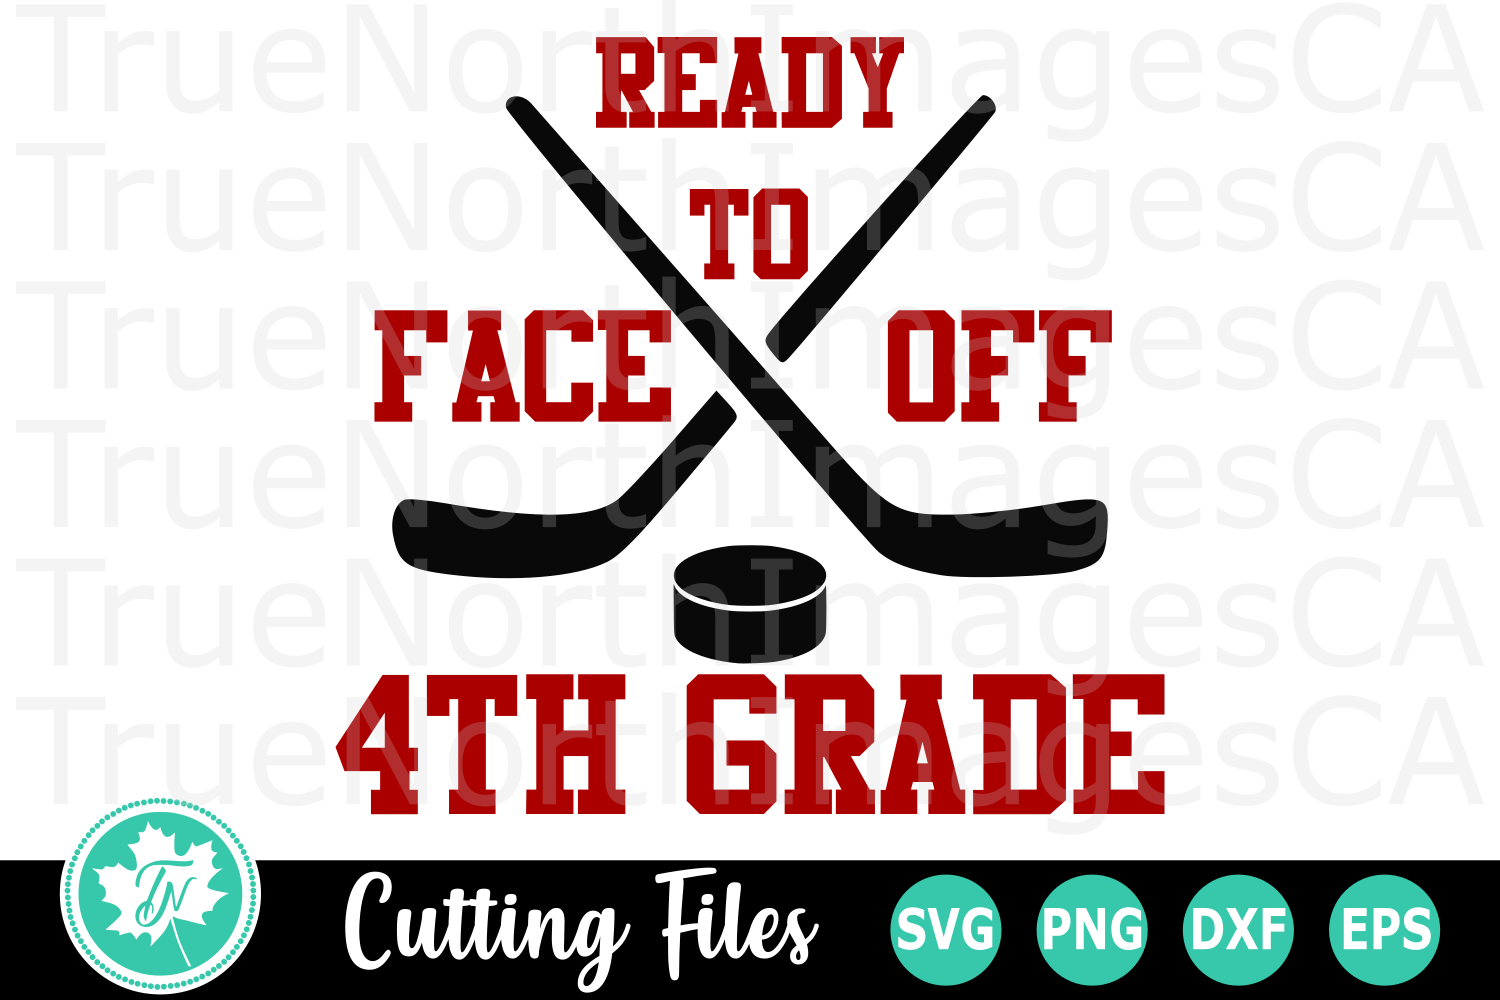 Ready to Face off 4th Grade - A School SVG Cut File example image 1